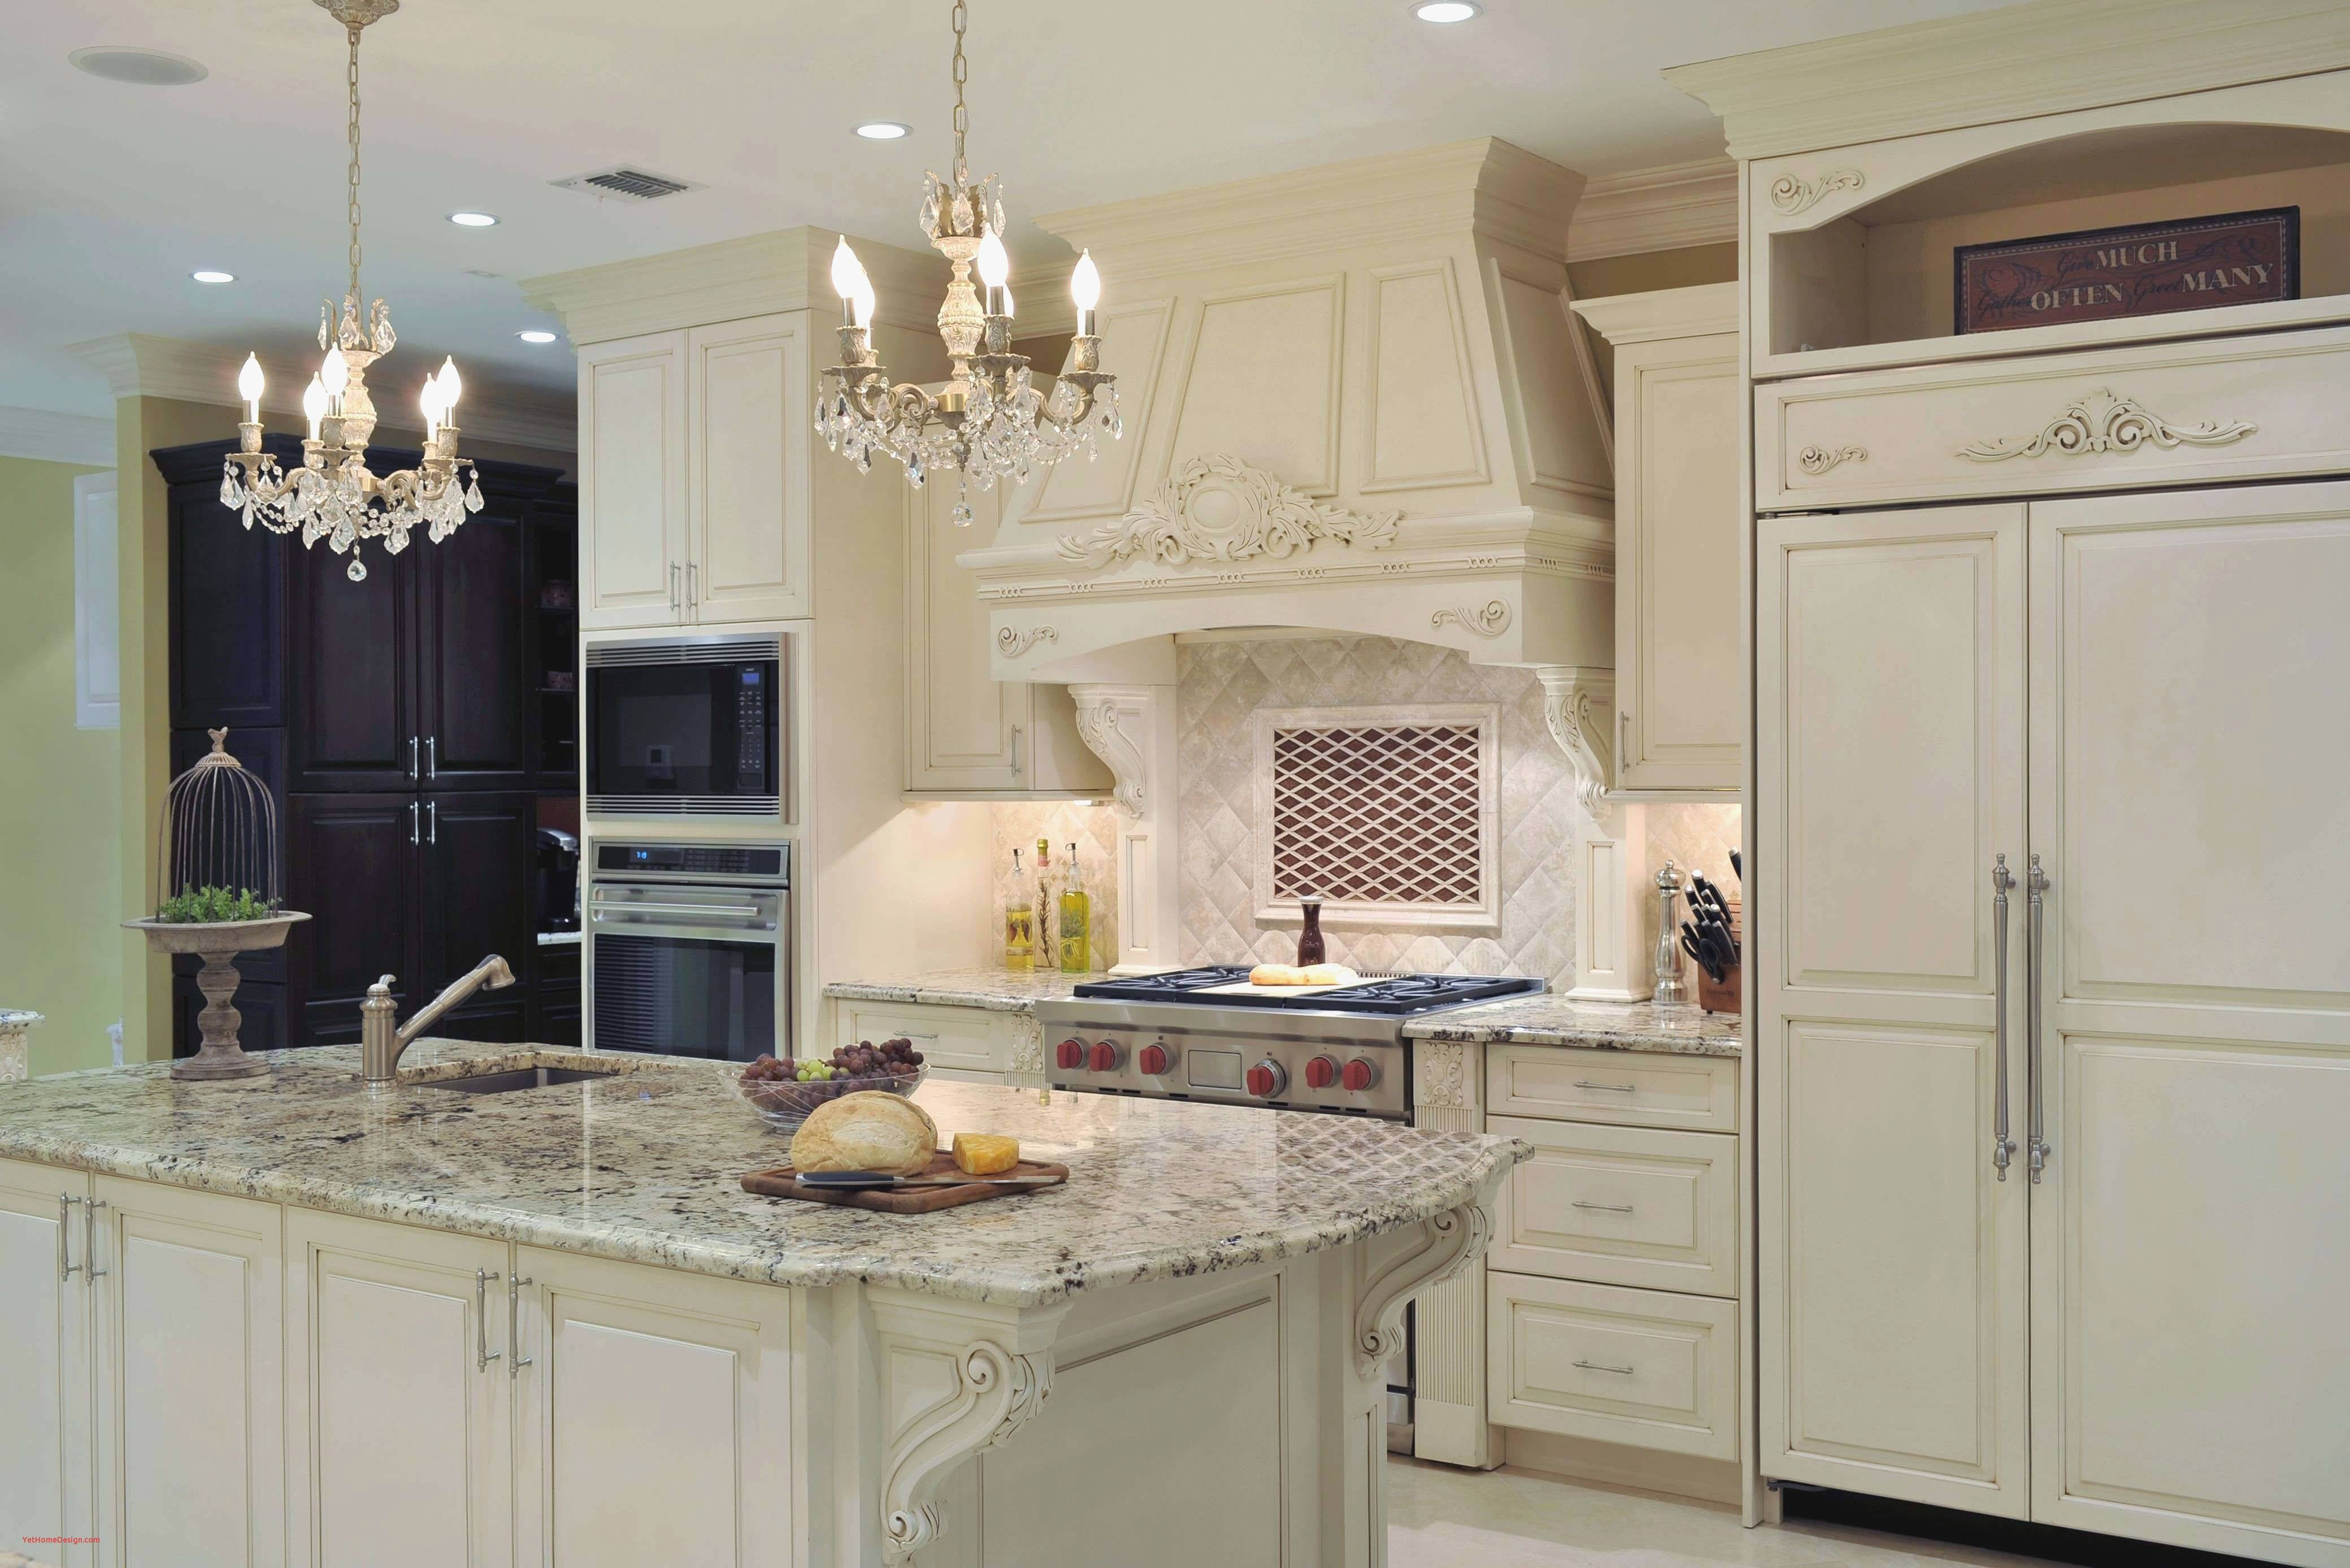 kitchen cabinets with black countertops modern kitchen cabinets makeover ideas new how much is kitchen cabinet of kitchen cabinets with black countertops